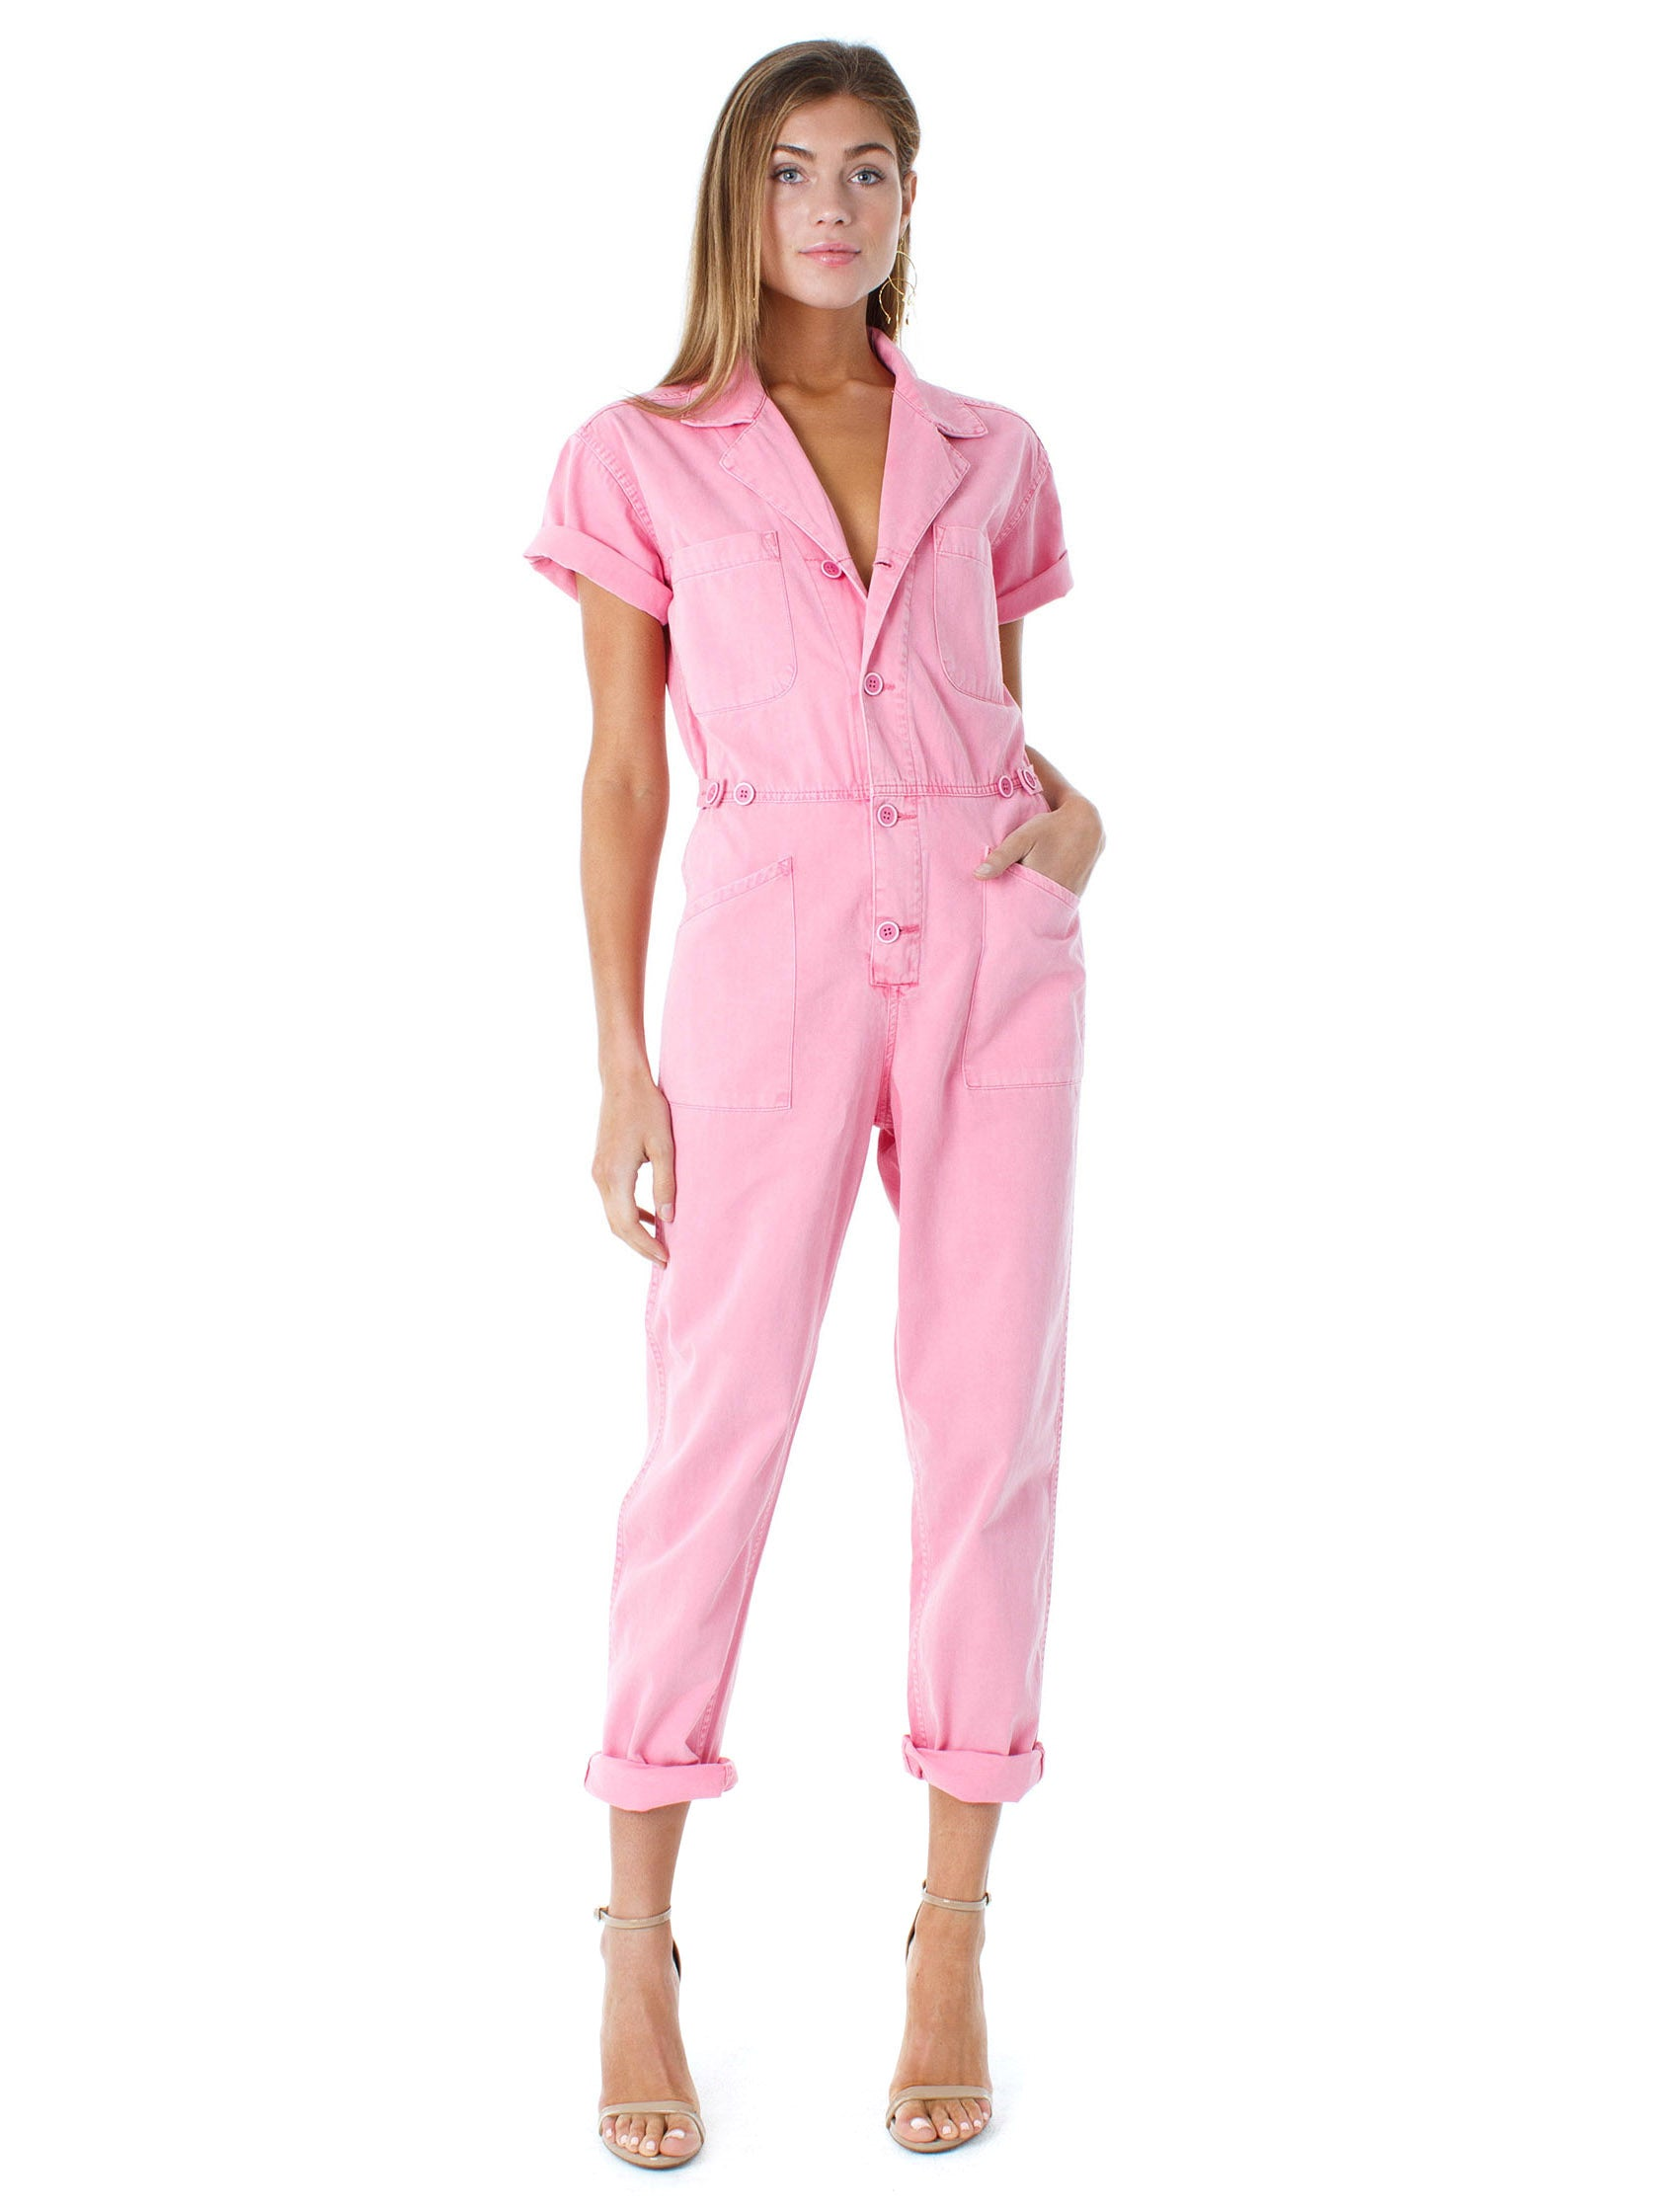 Girl outfit in a jumpsuit rental from PISTOLA called Grover Short Sleeve Field Suit